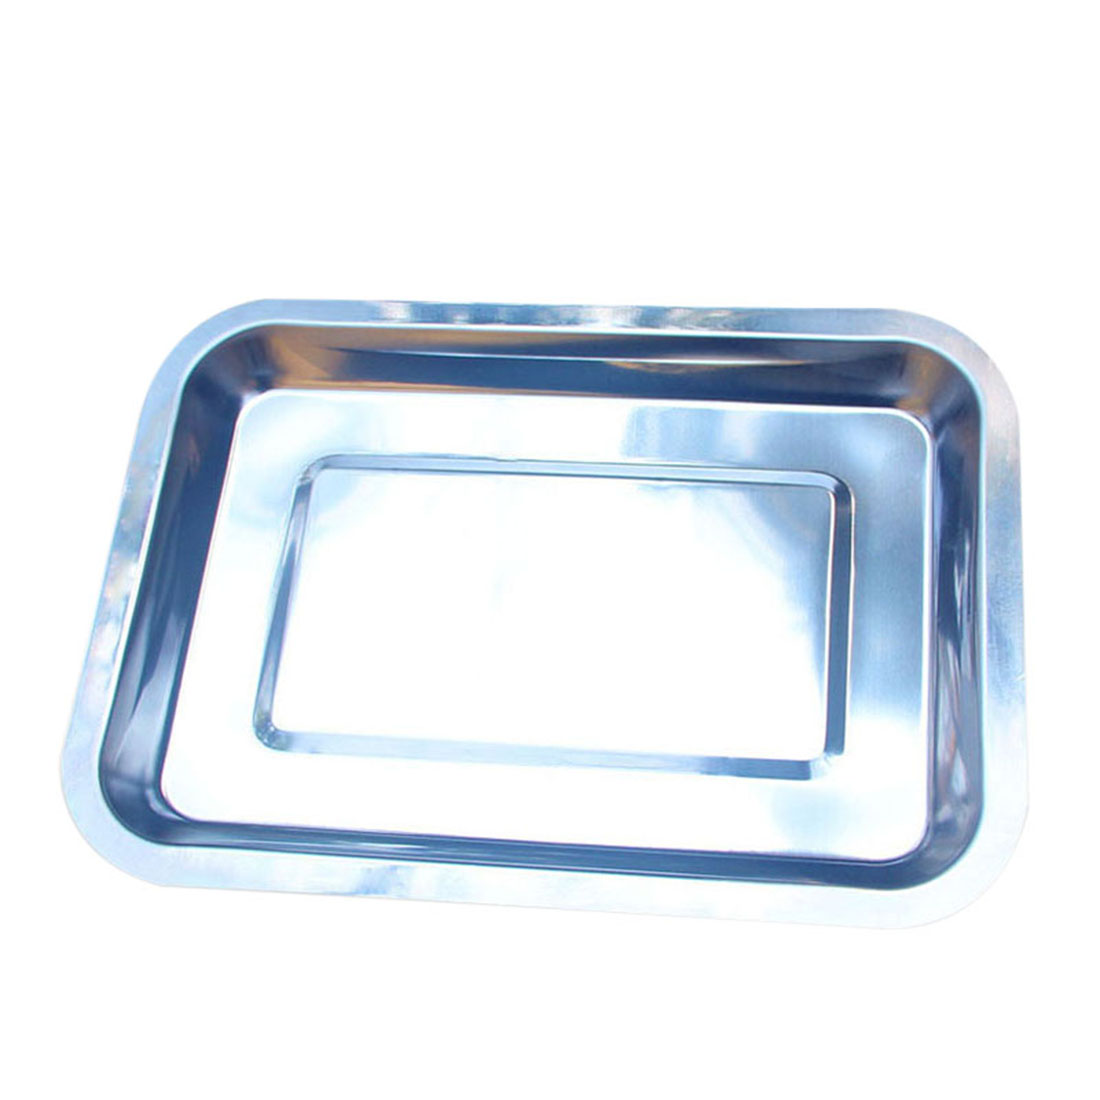 Stainless Steel Tray 1pcs Dish Box Container Serve Storage Keeper Tray Barbecue Essential Supplies Tableware Plates ...